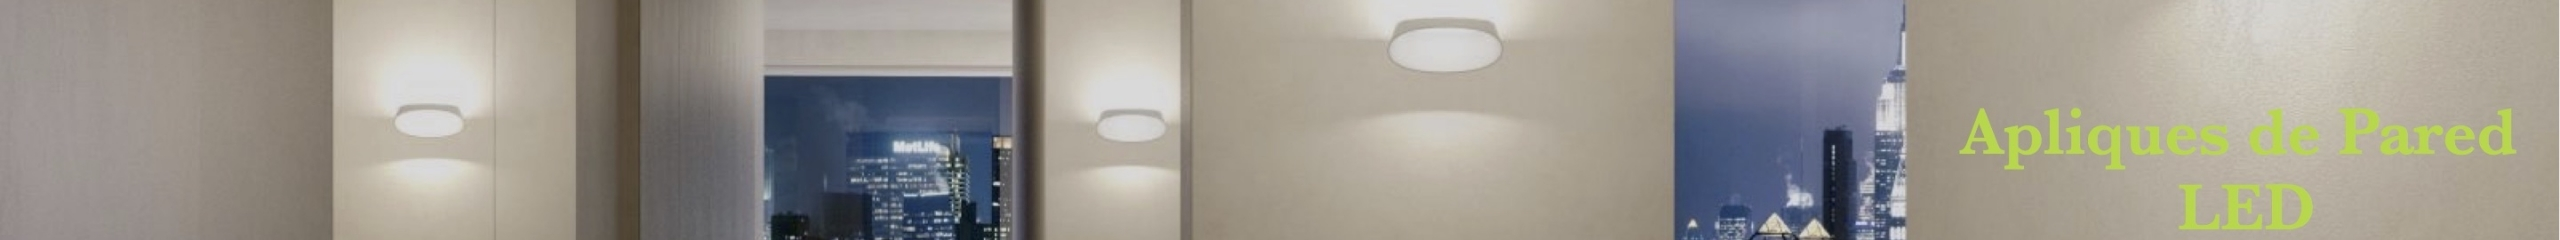 Apliques de Pared LED